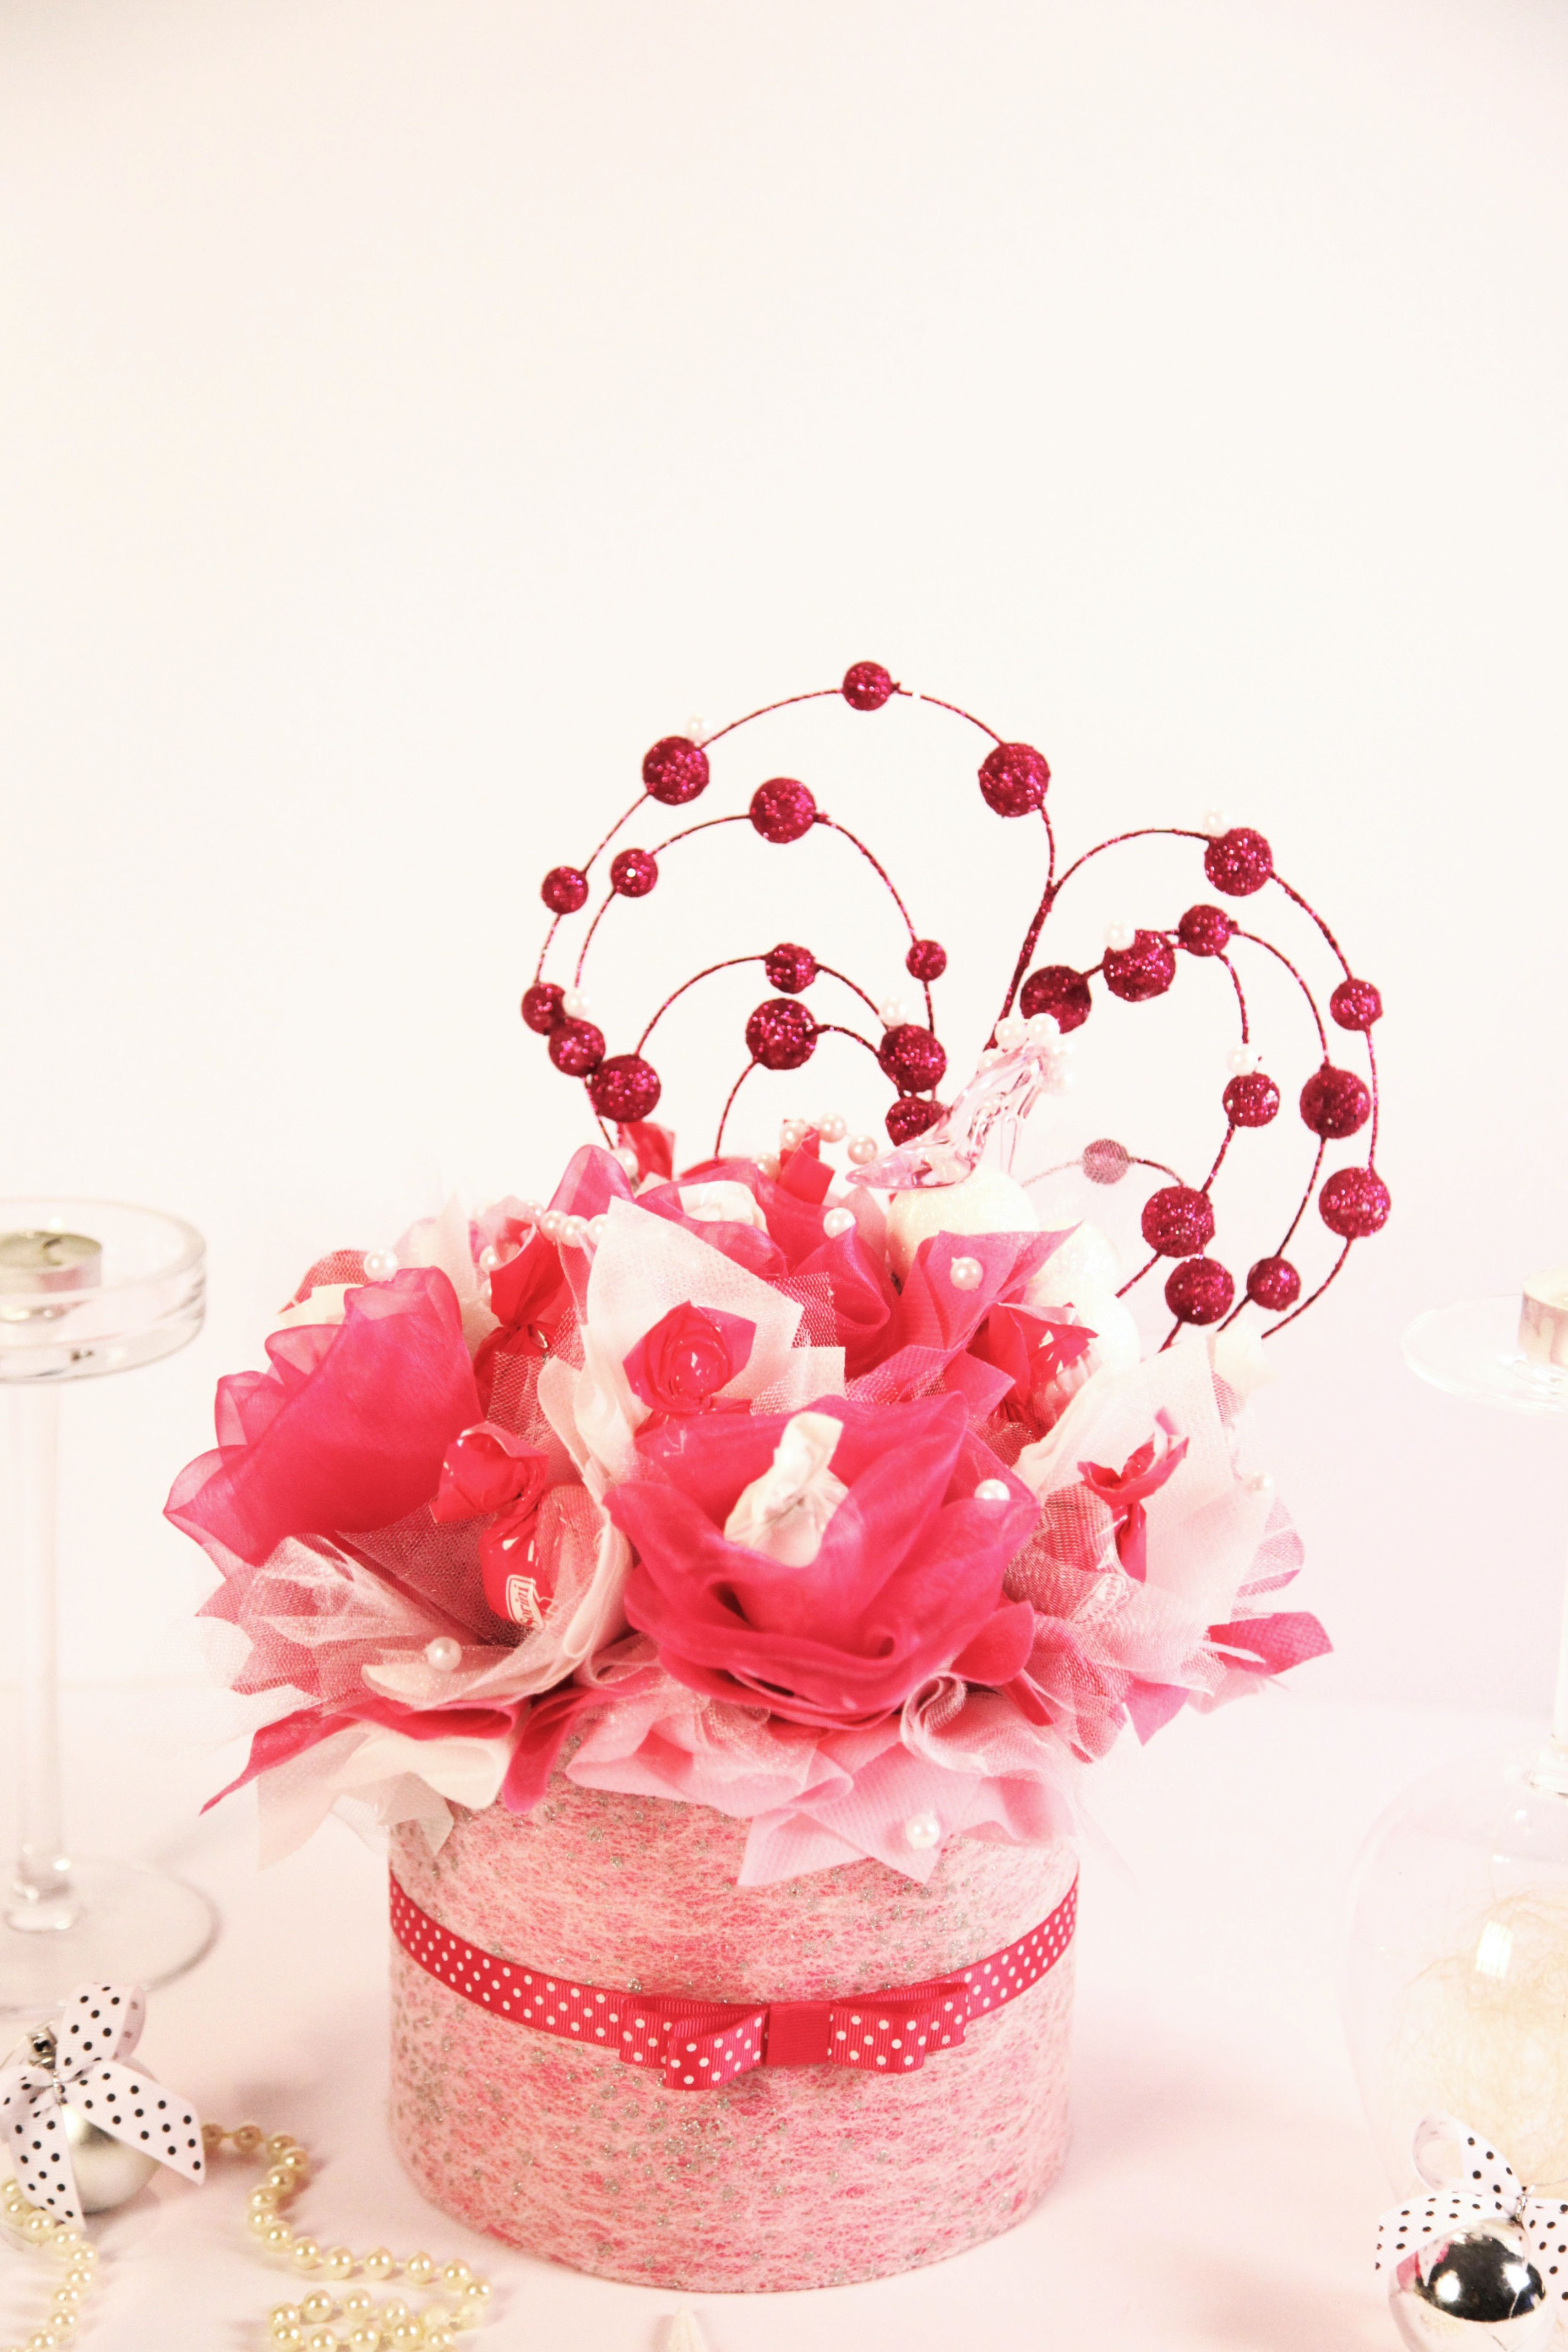 Chocolate bouquet on pinterest candy flowers bouquet of chocolate - Valentine S Day Chocolate Bouquet Candy Flowerschocolate